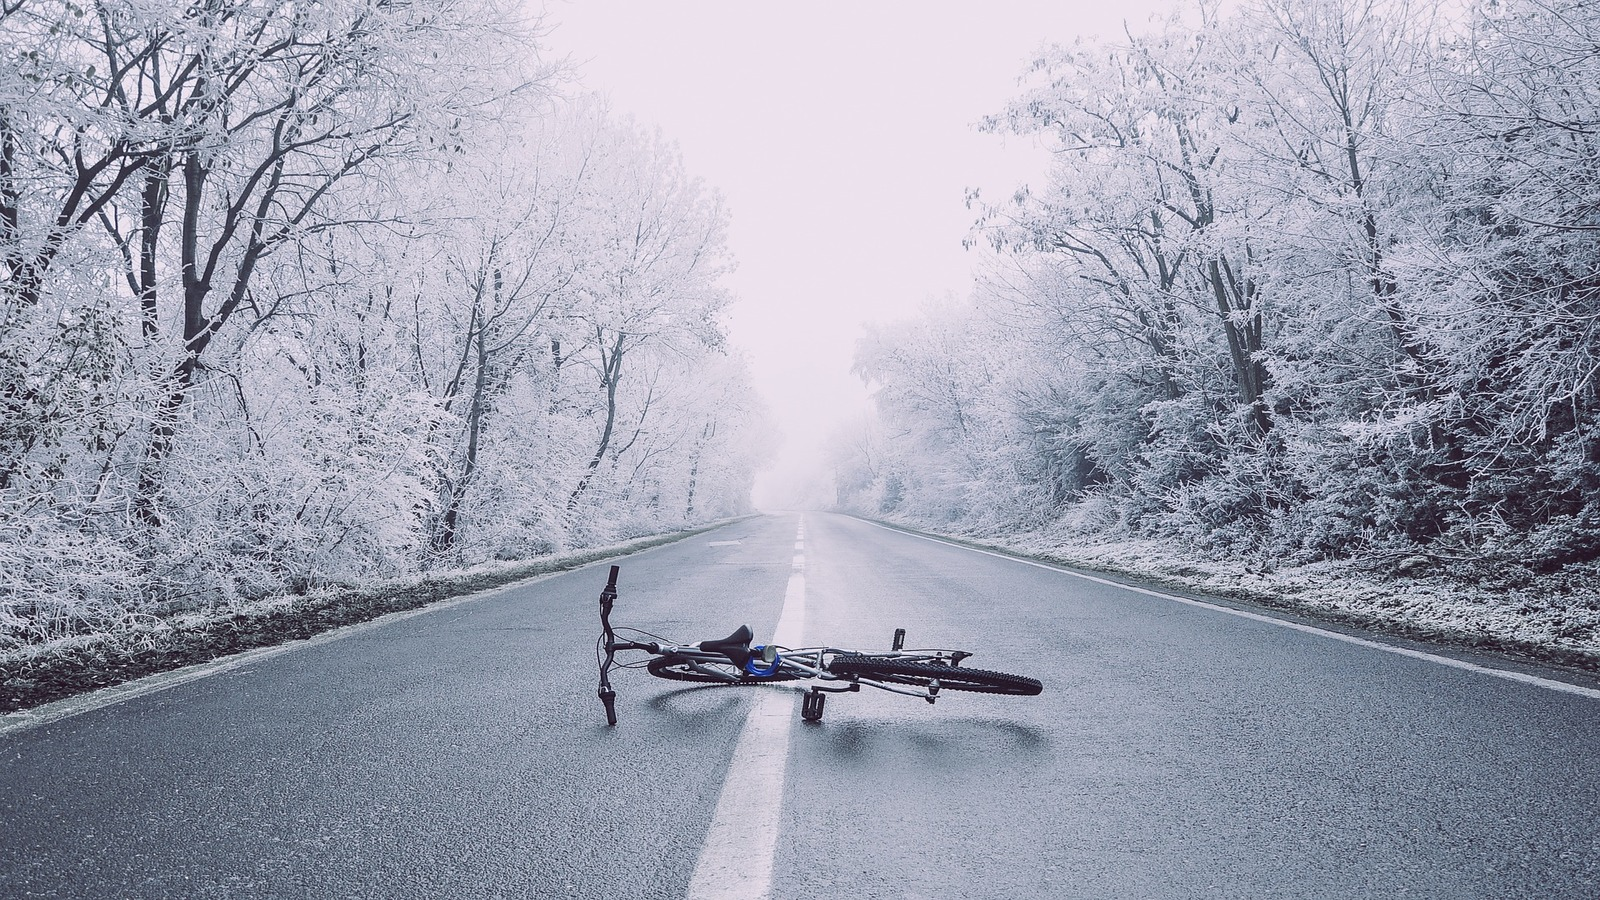 Bike laying in middle of road in frosty weather